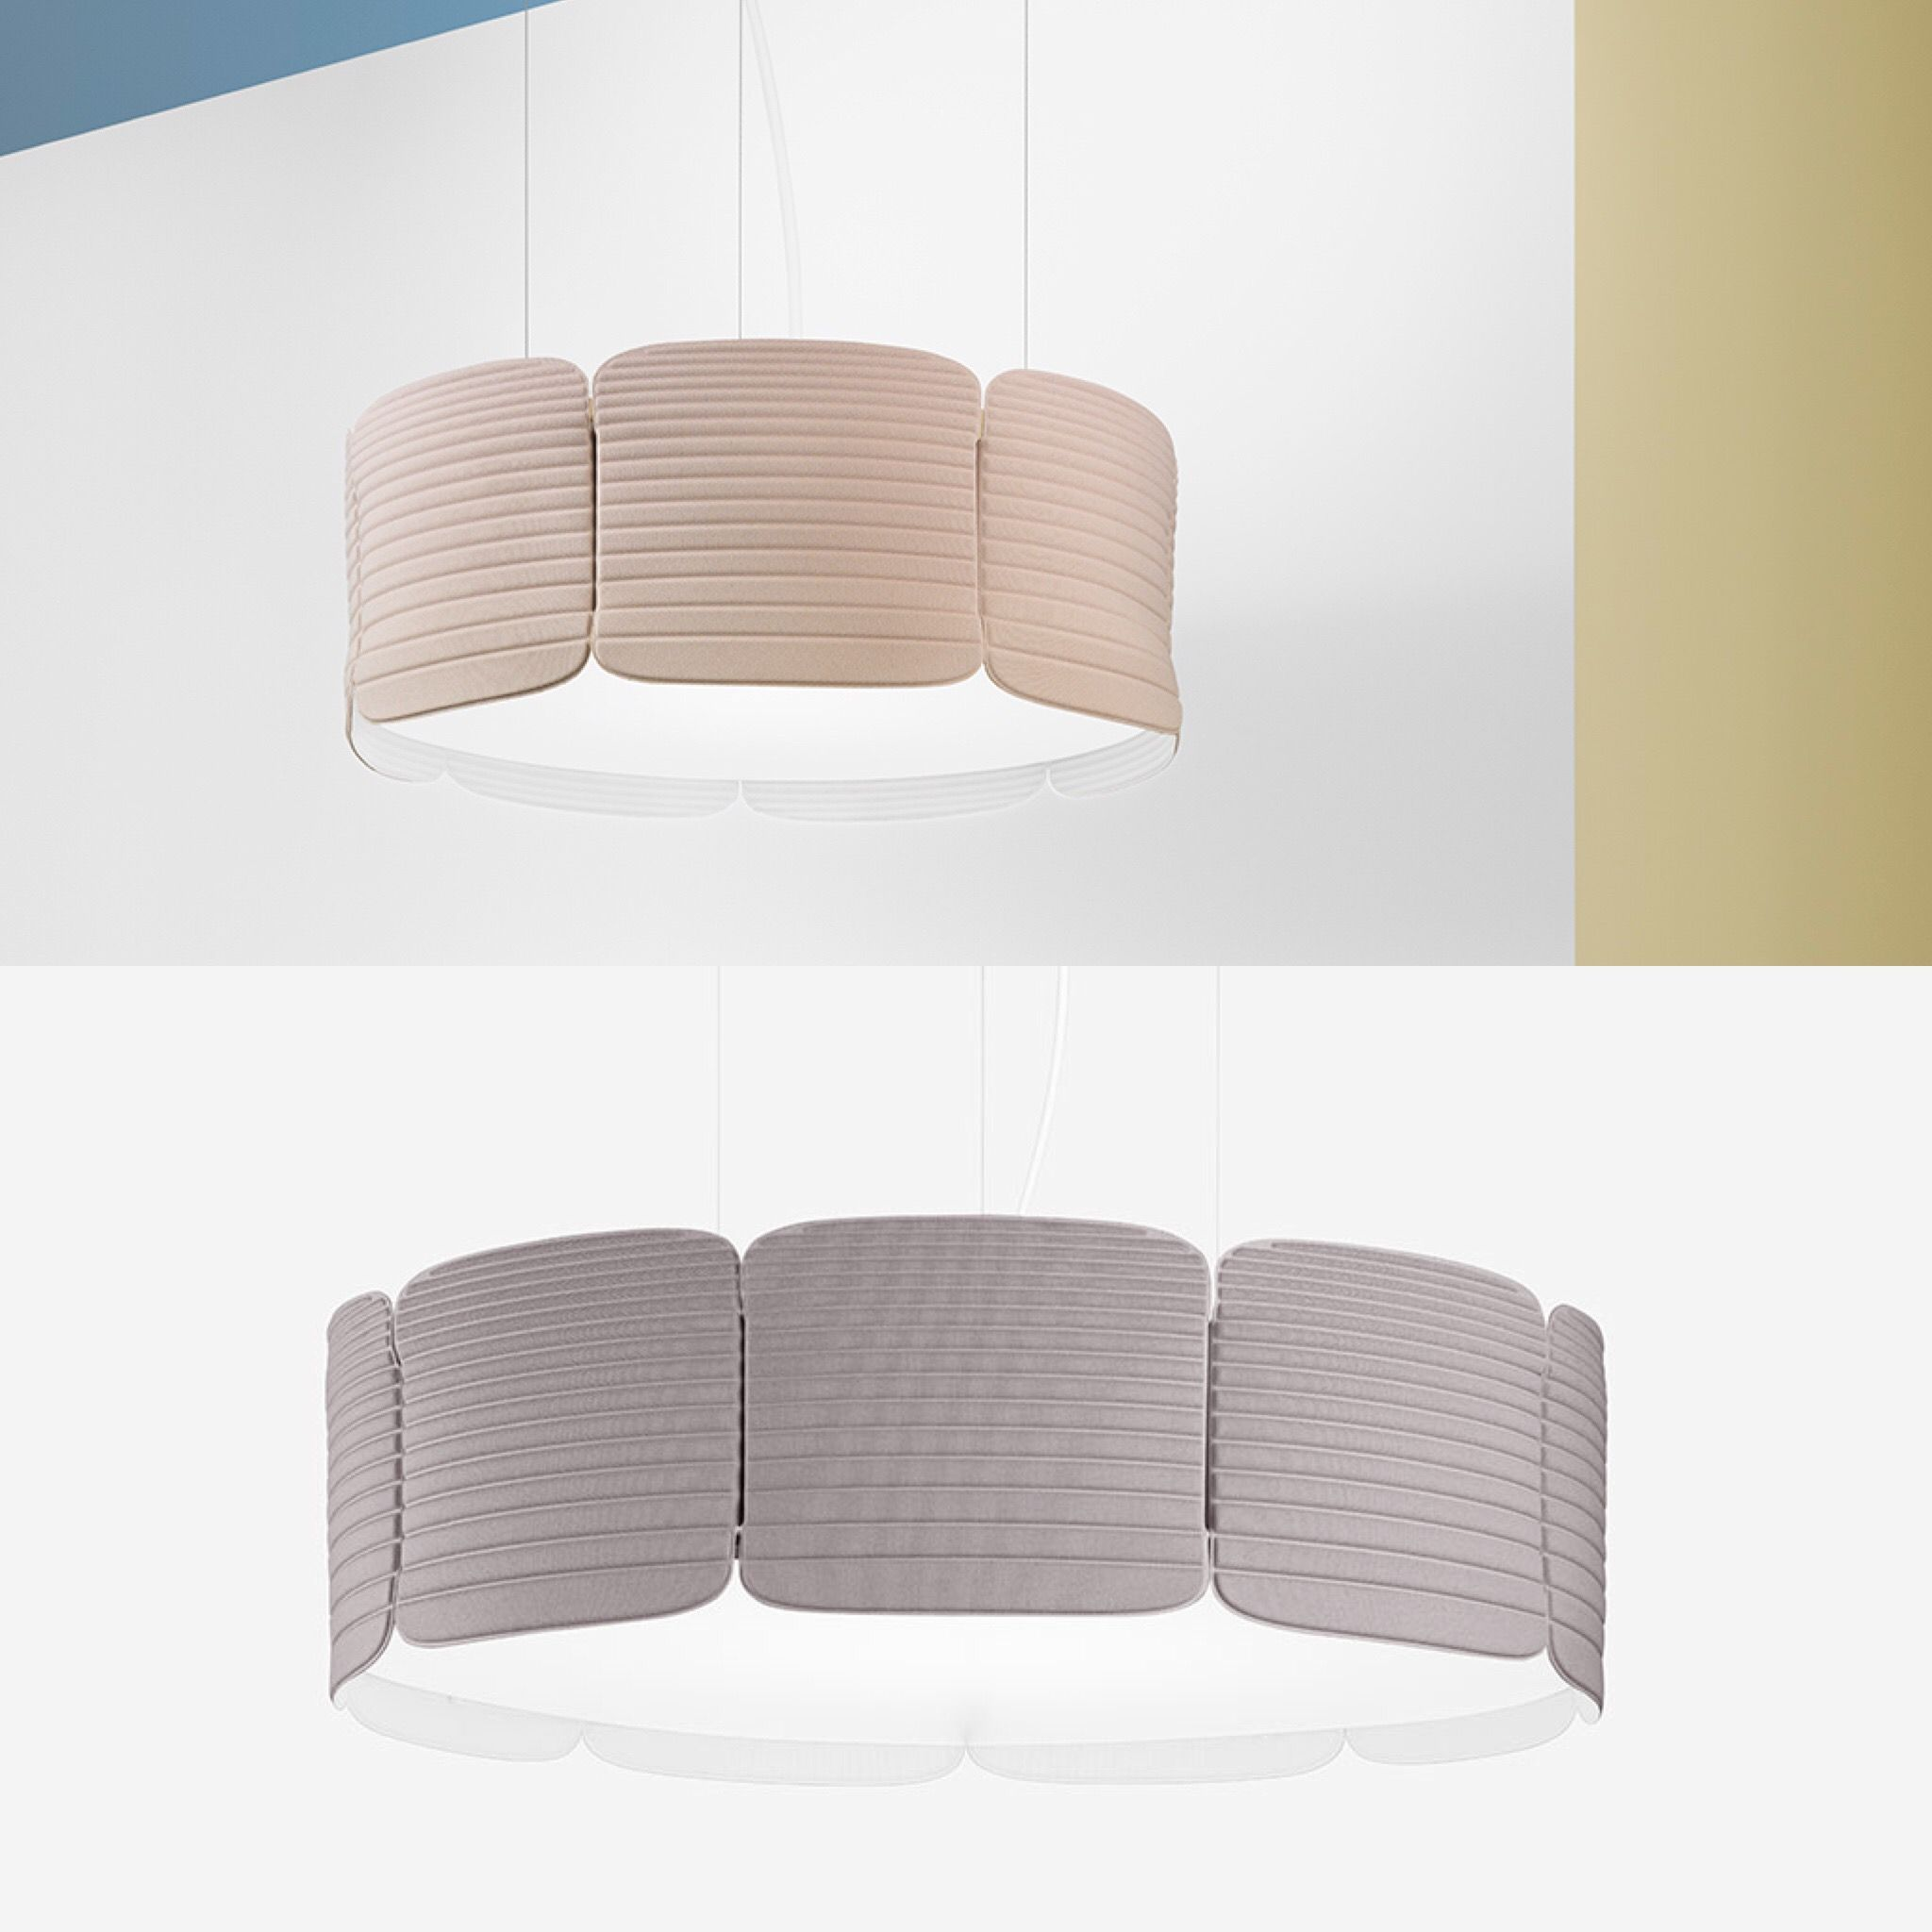 Real Nordic Lights From Sweden Www Sumoto Co Com 照明デザイン